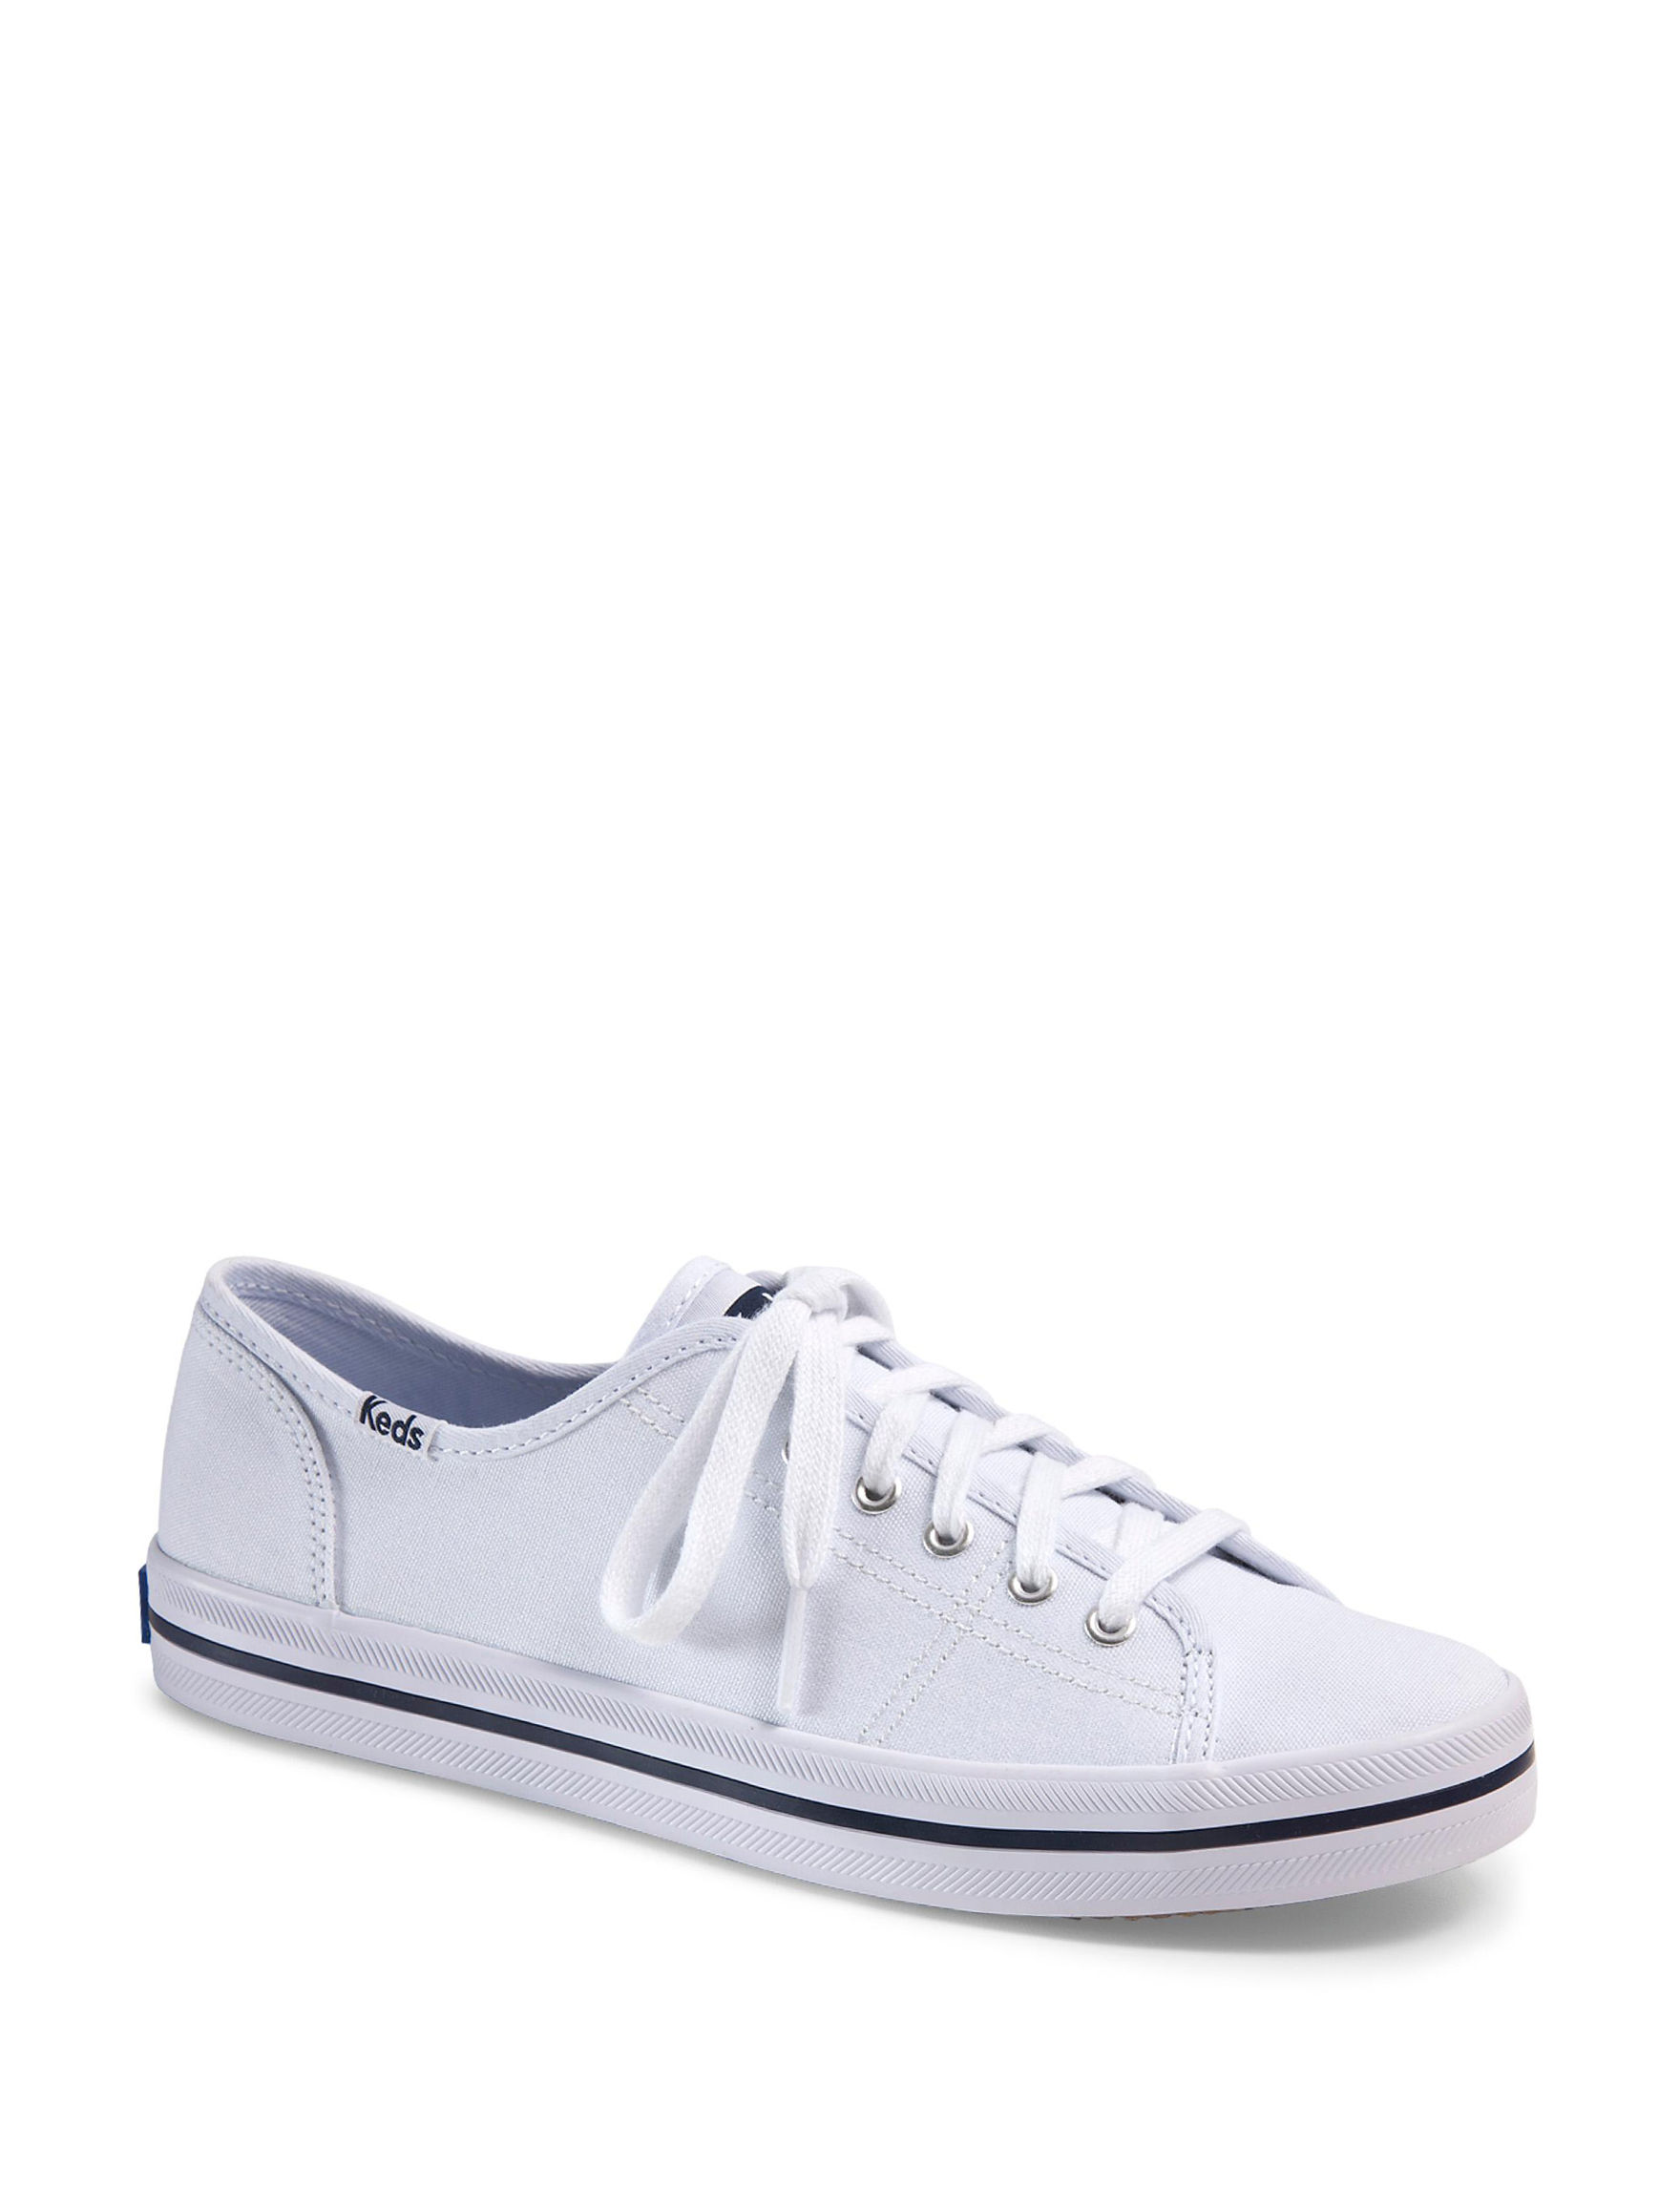 Keds White Comfort Shoes